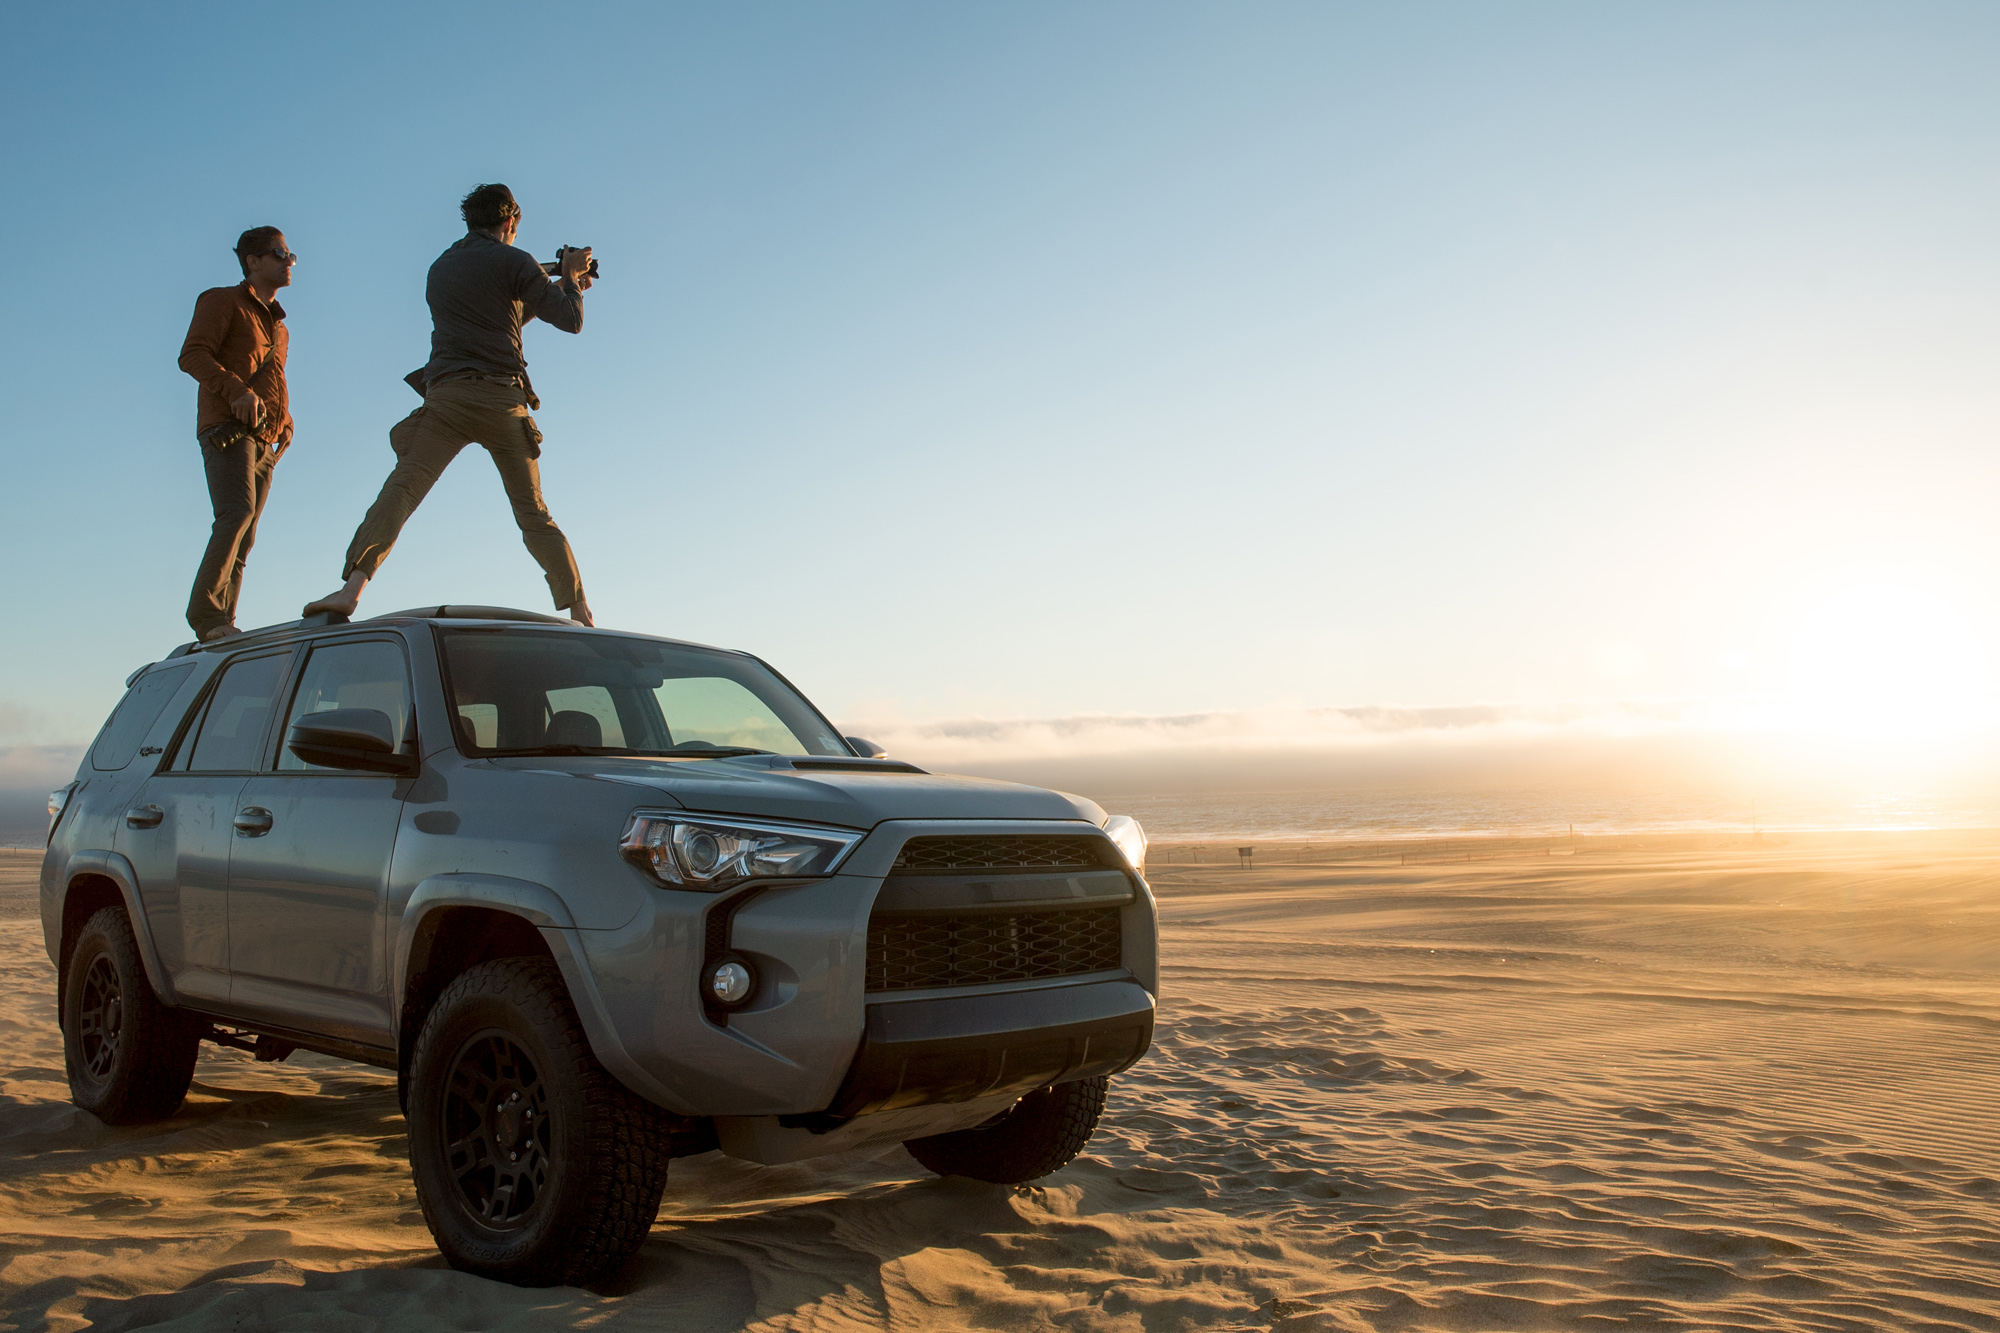 Standing on vehicle filming in Australian desert